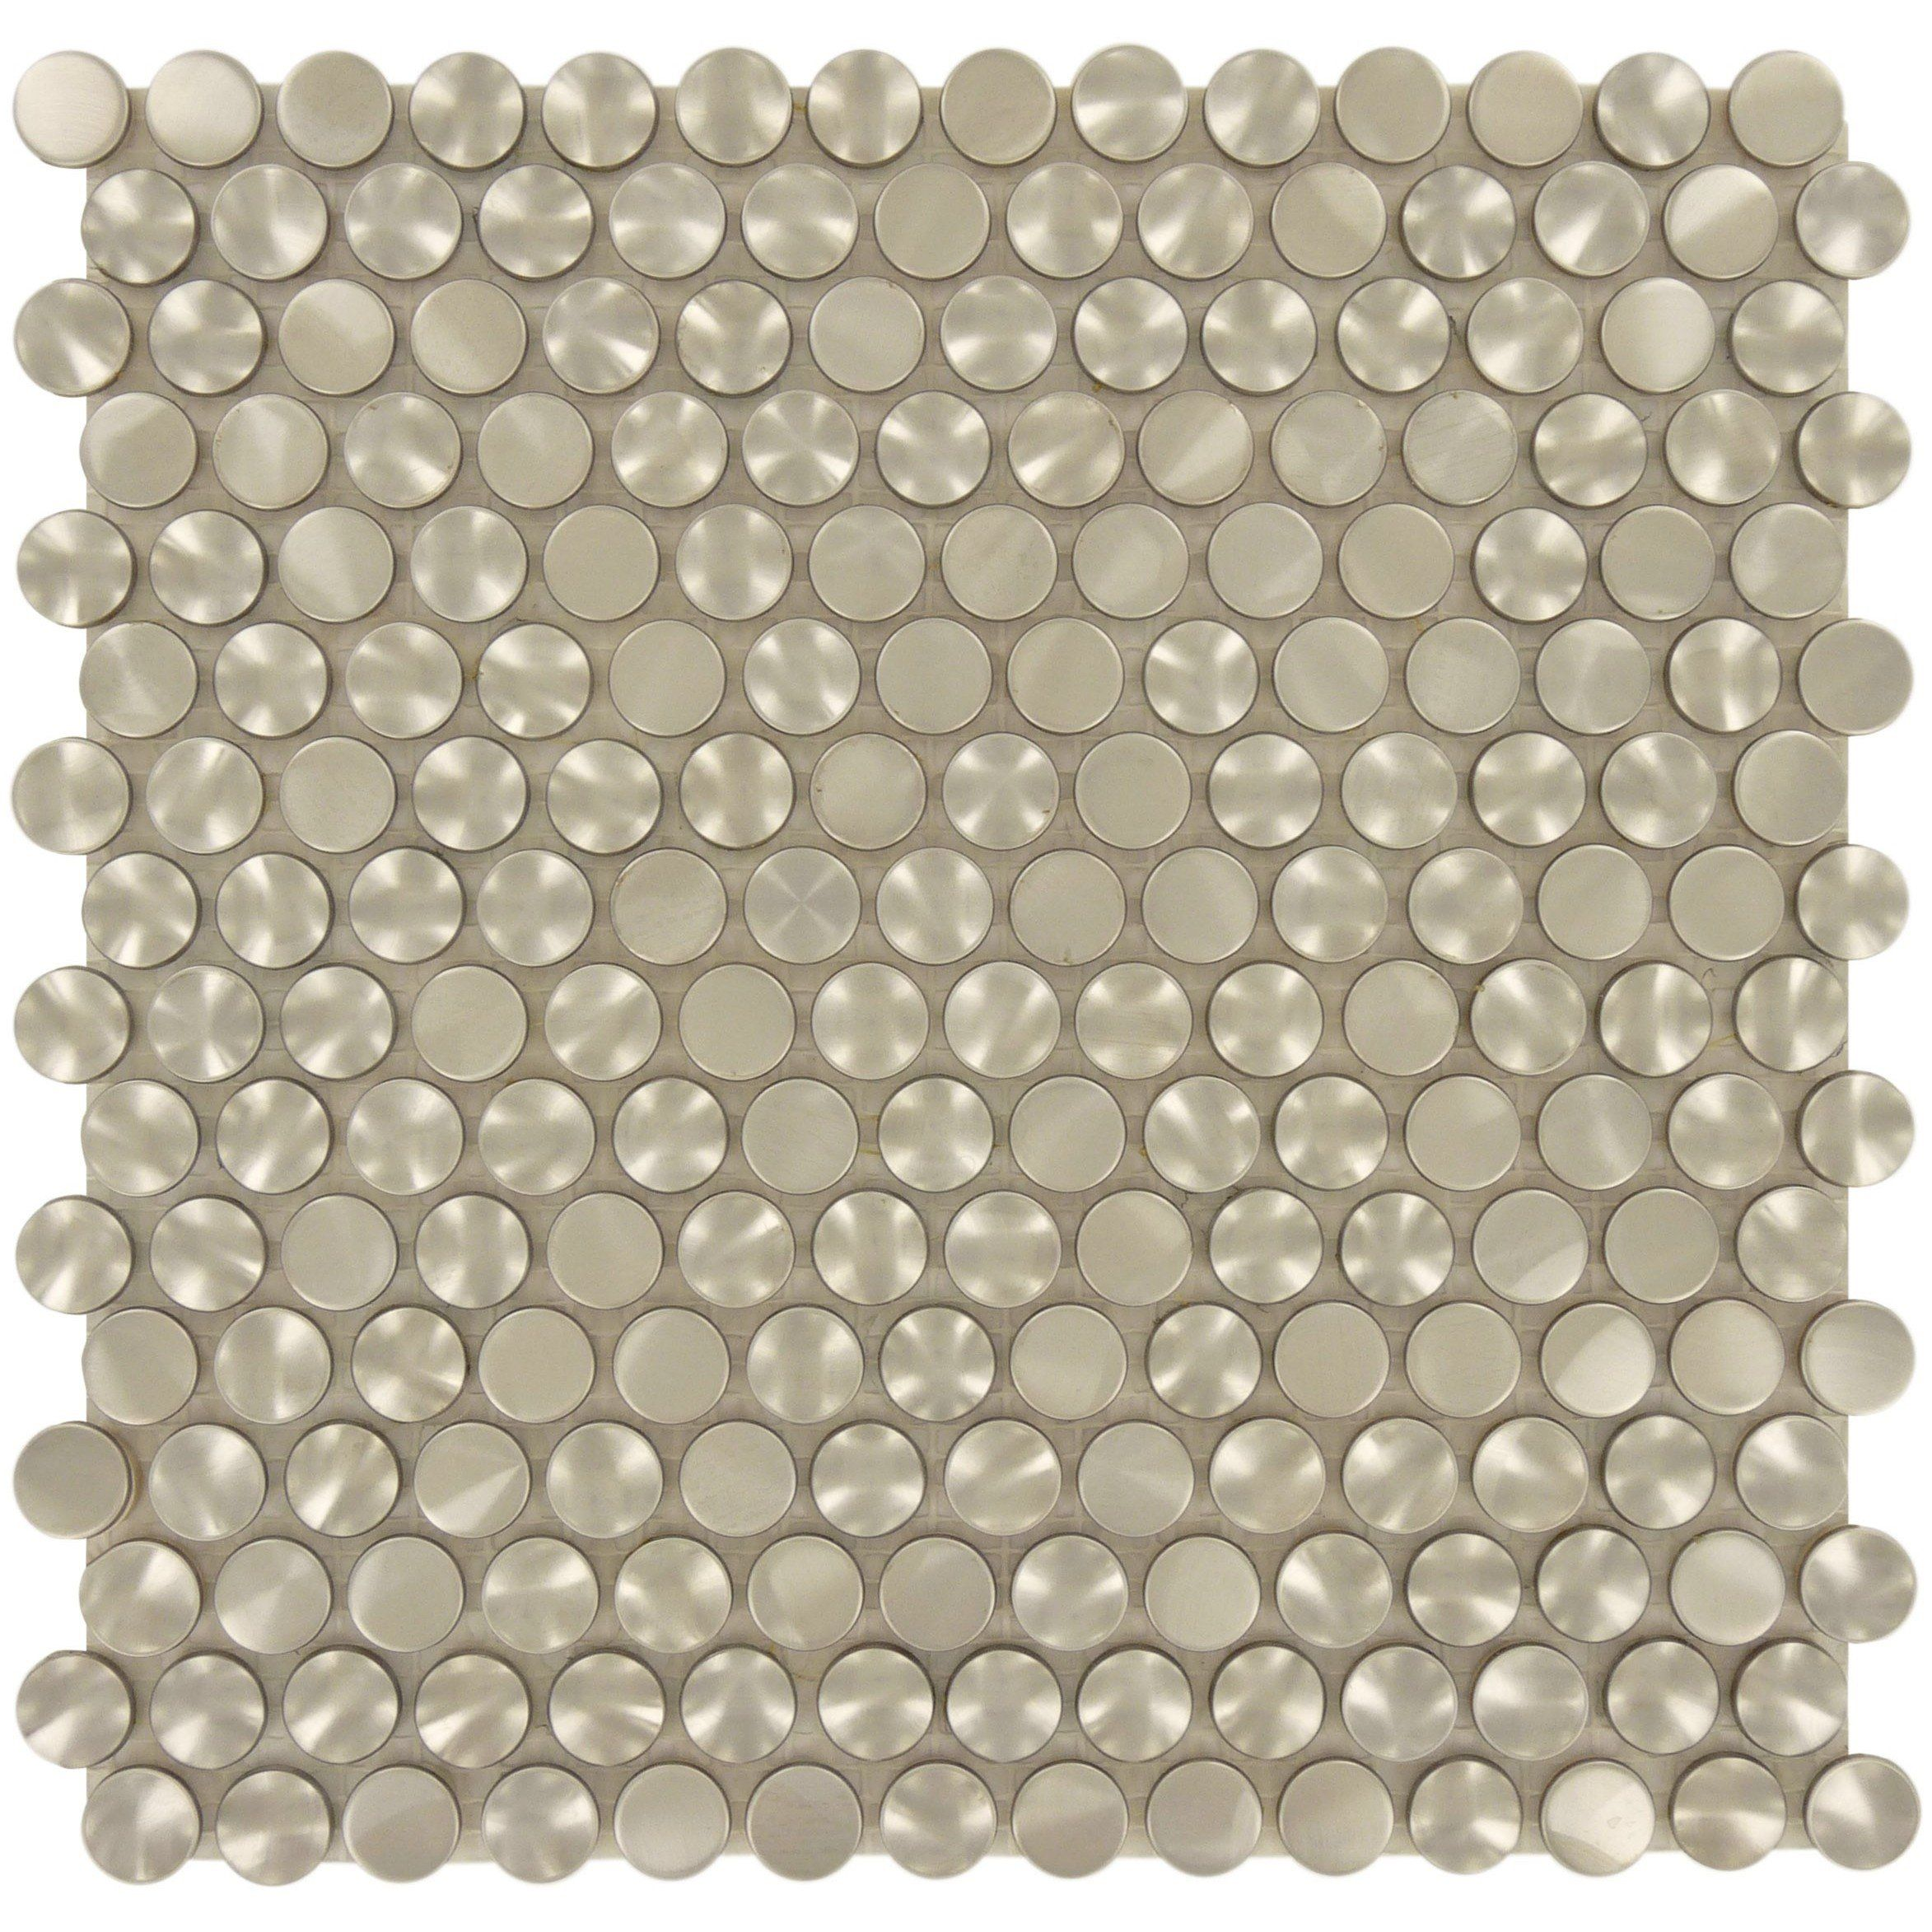 Sheet Size 11 1 2 X 11 1 2 Tile Size 5 8 Diameter Tile Thickness 1 4 Nominal Grout Joints 1 8 Sheet Mount Mesh Backed Steel Stainless Steel Tiles